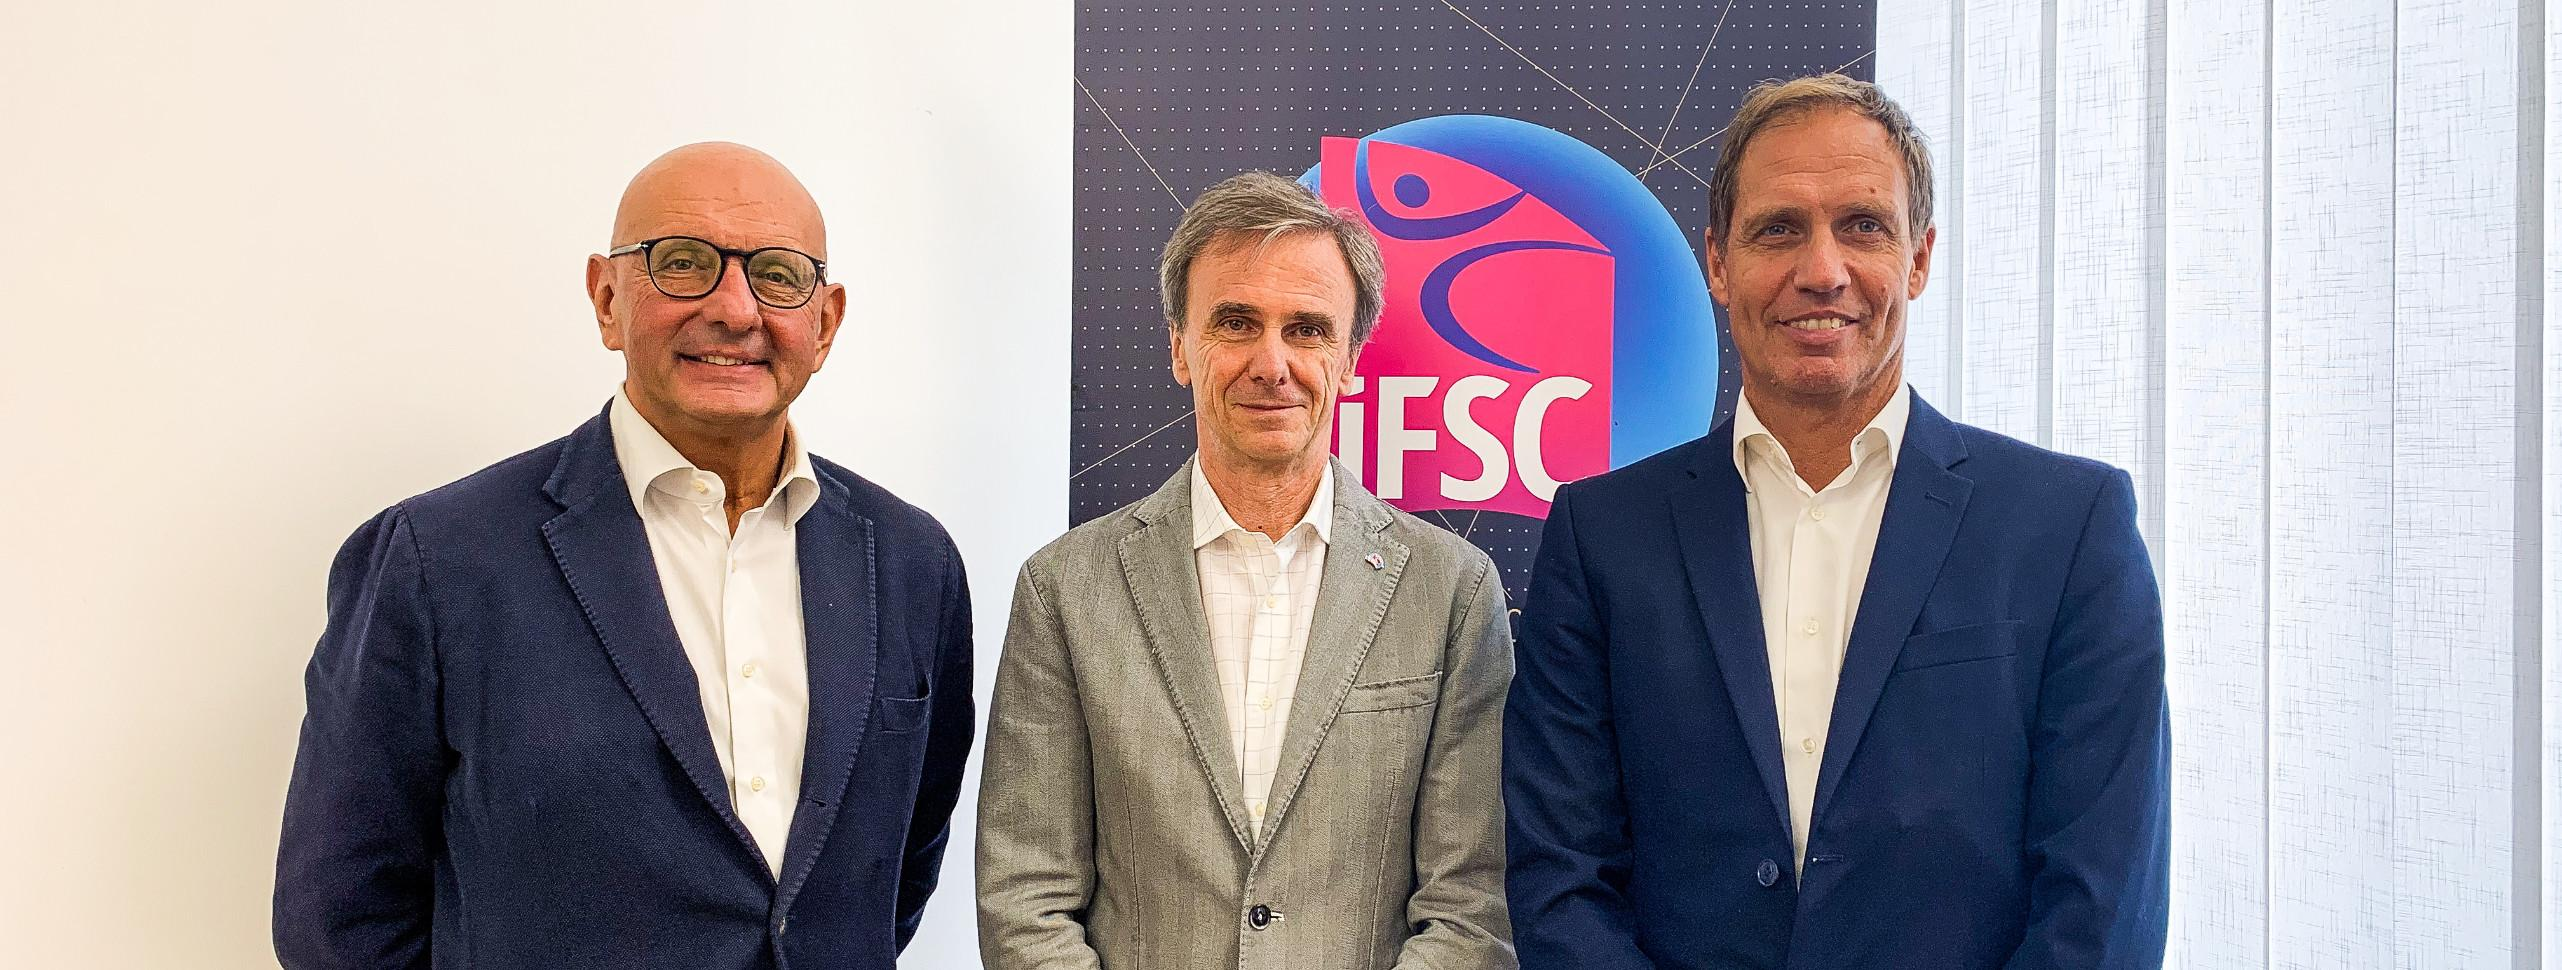 IFSC STAFF ATTENDS FIRST INTERNAL SEMINAR IN THE LEAD UP TO TOKYO 2020